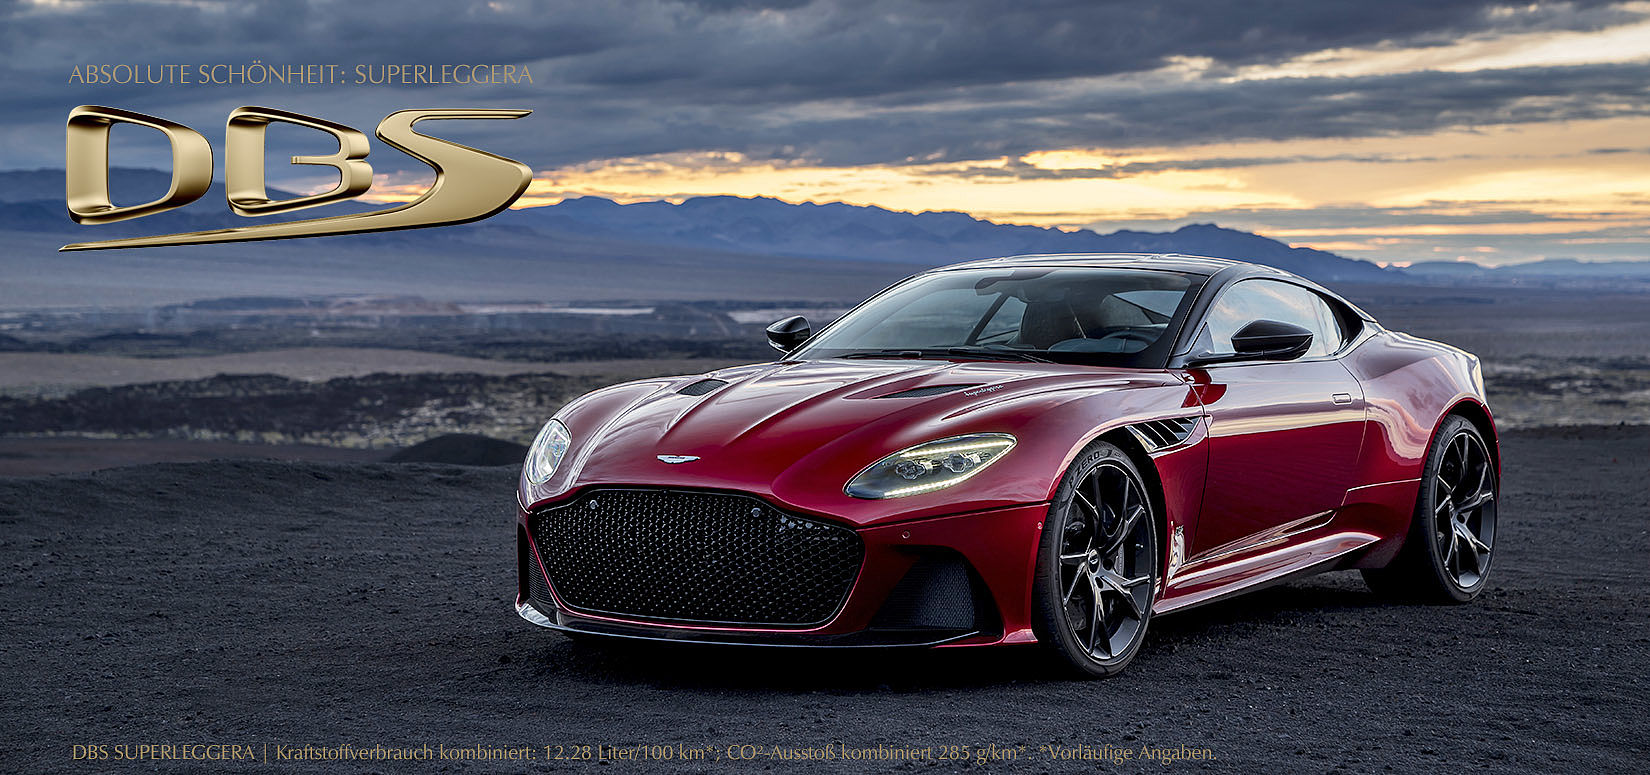 2018: DBS Superleggera